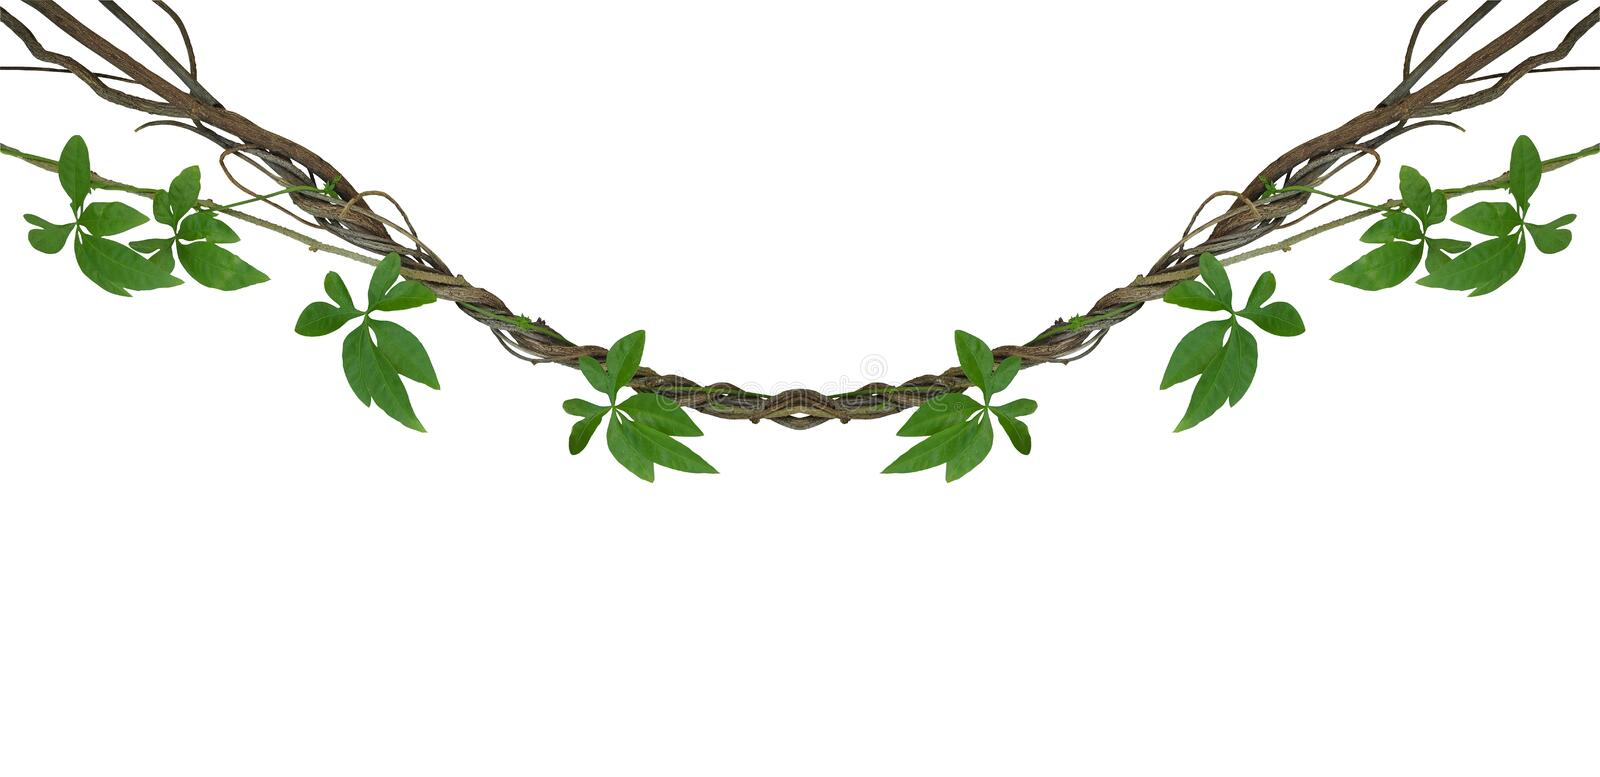 Twisted jungle vines with green leaves of wild morning glory liana plant isolated on white background, clipping path included. royalty free stock photo